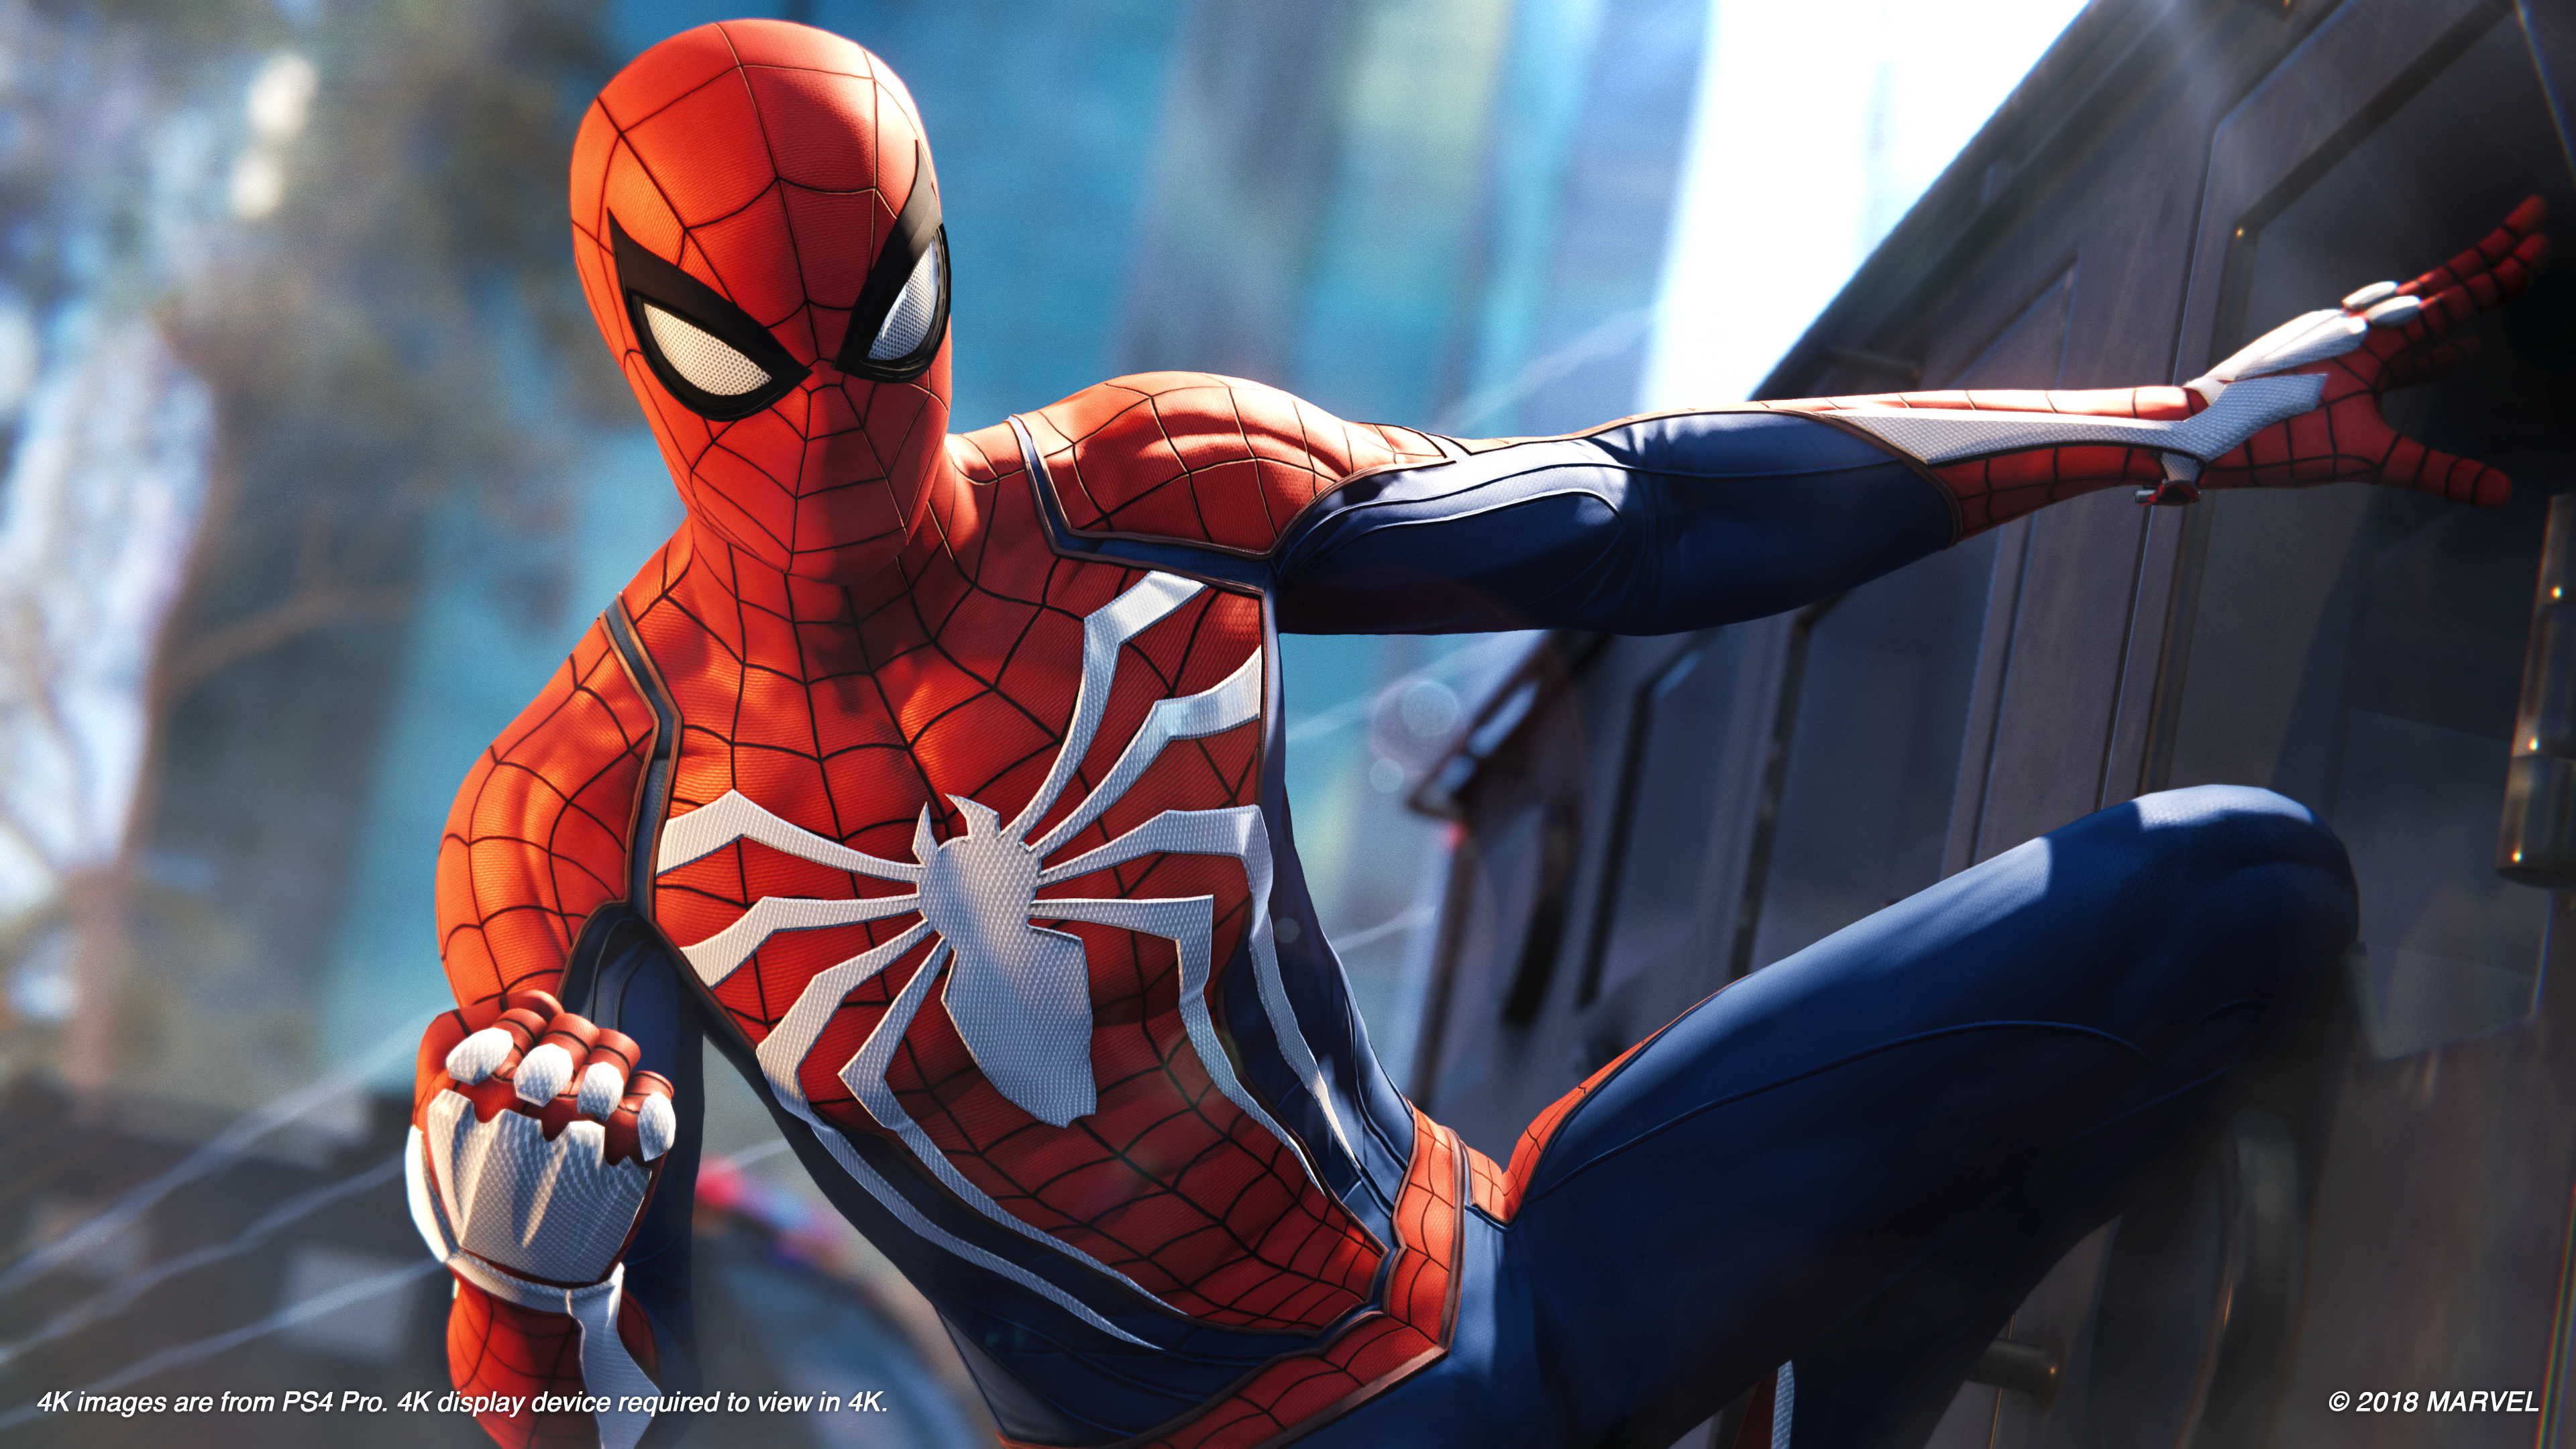 Spider Man Ps4 4k Ultra Fond D Ecran Hd Arriere Plan